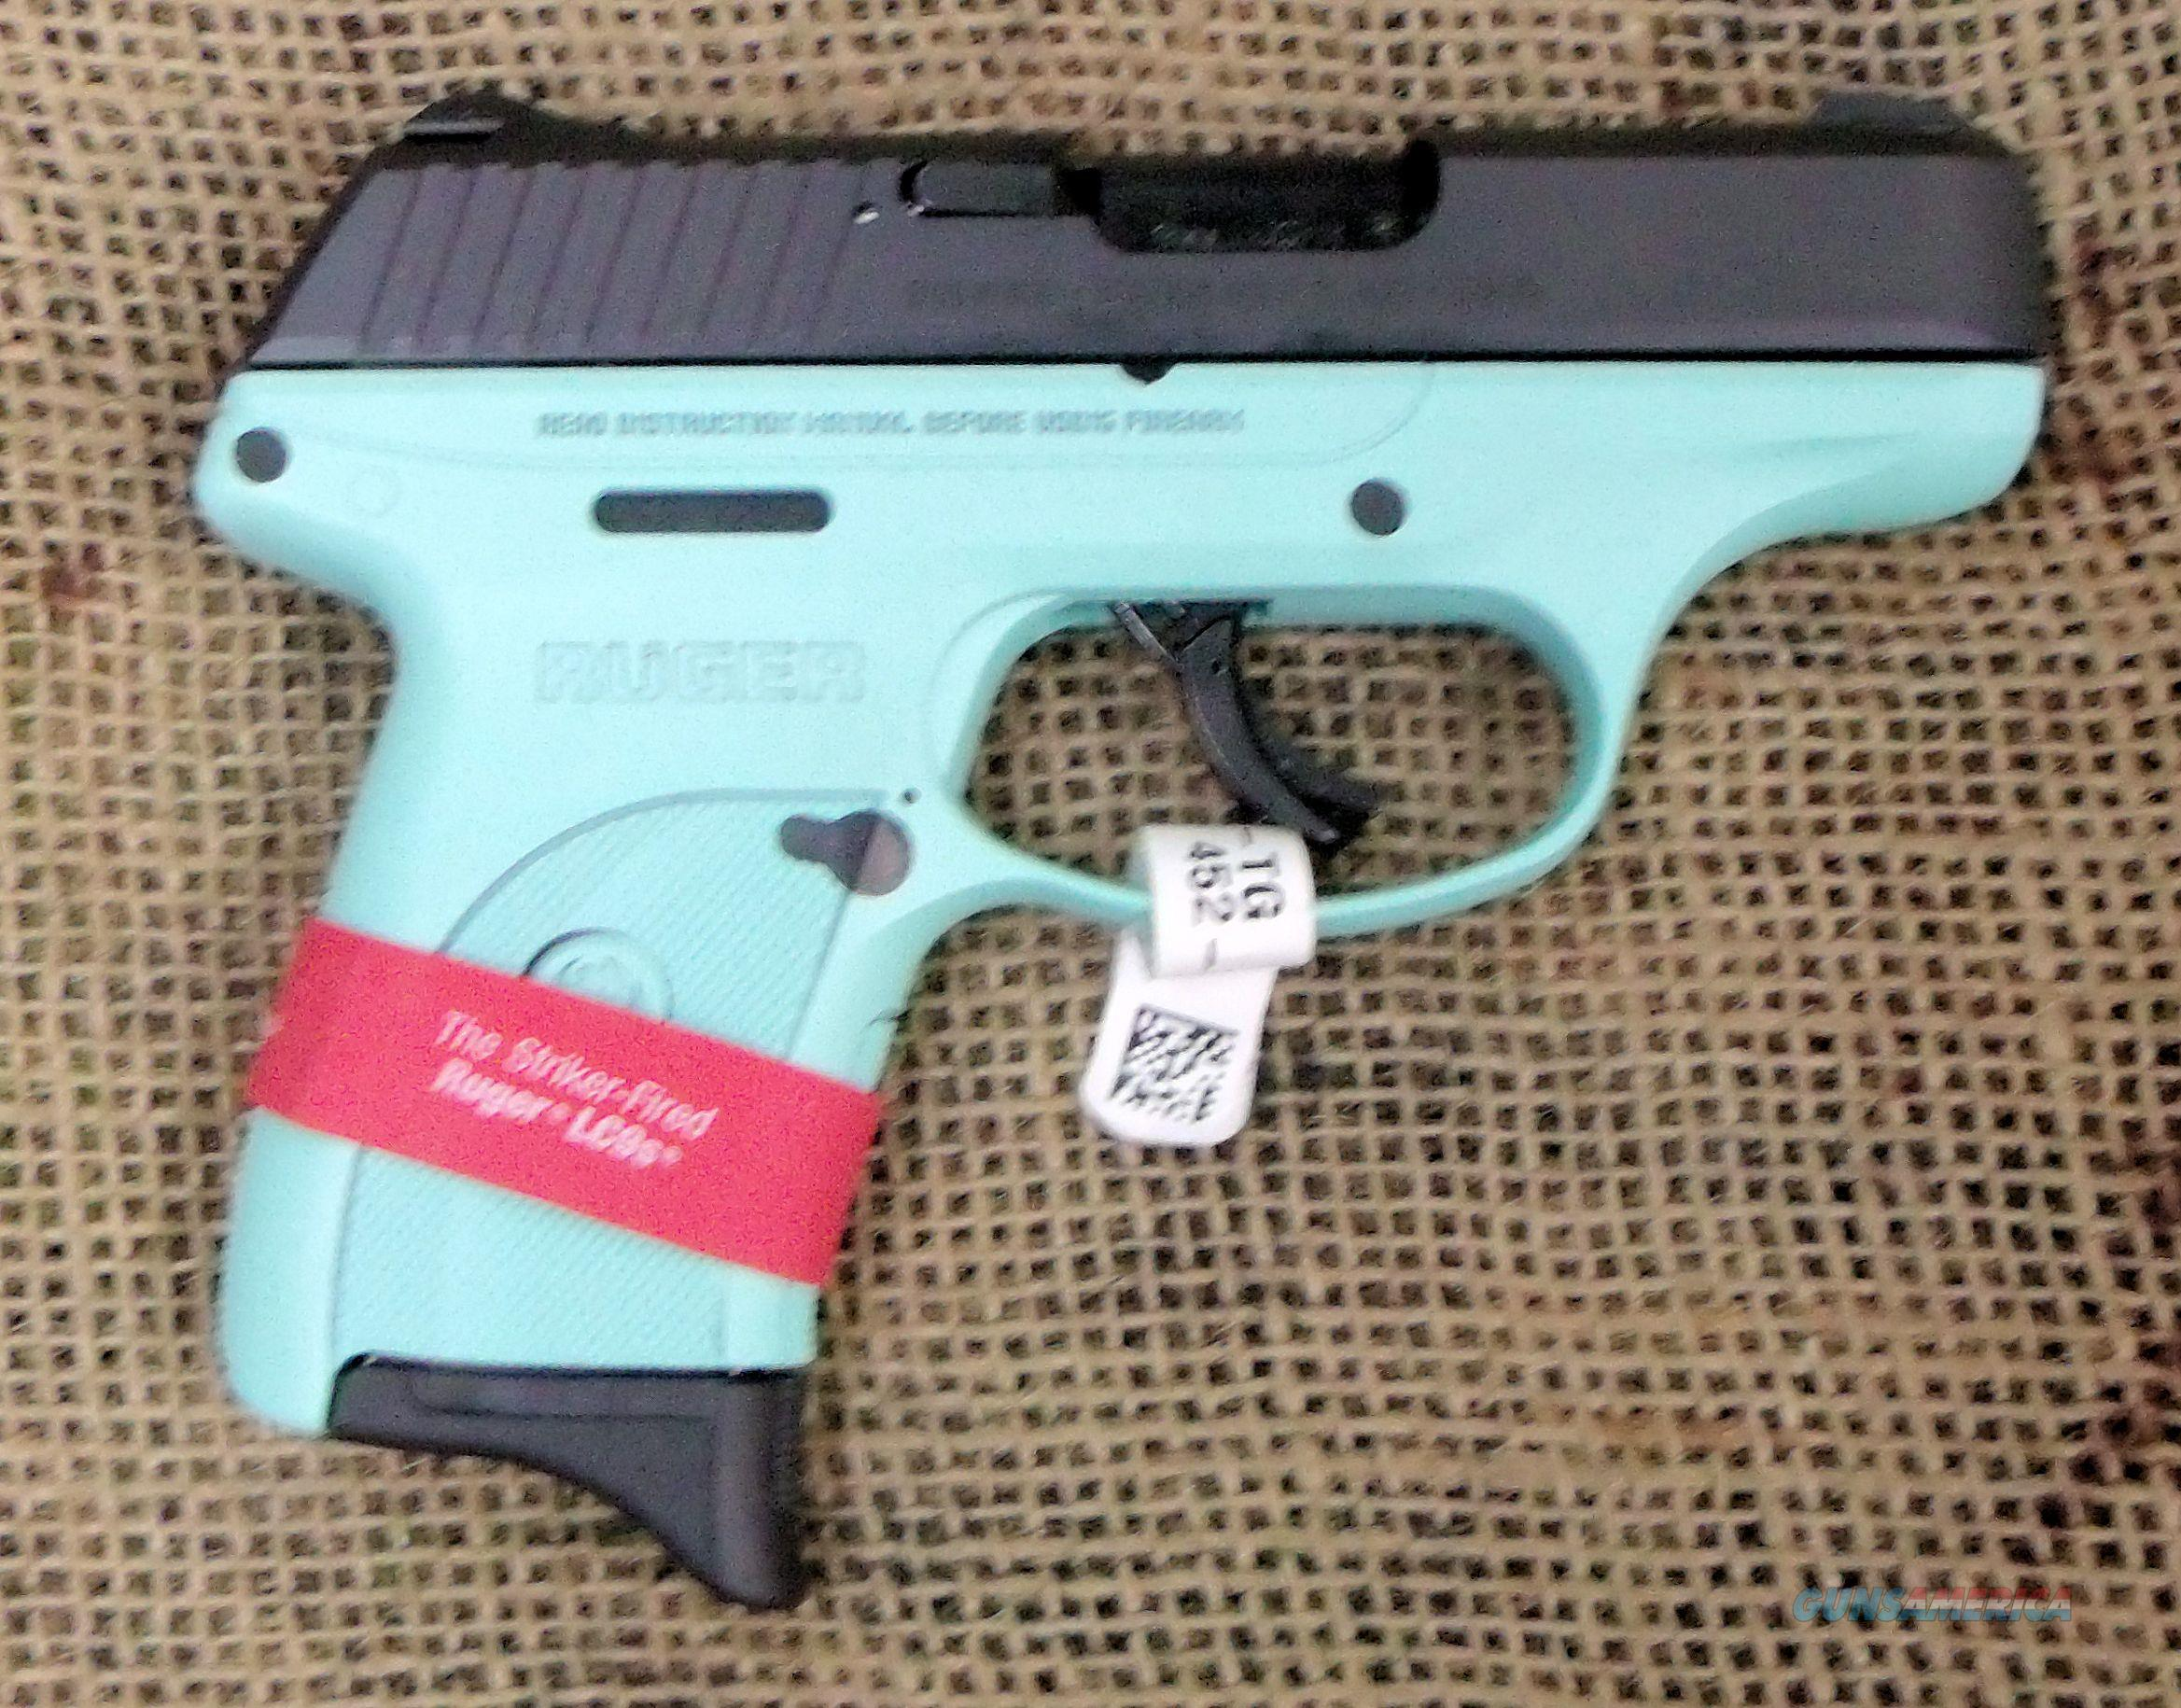 Ruger Lc9 Pistol Teal Green 9mm Cal